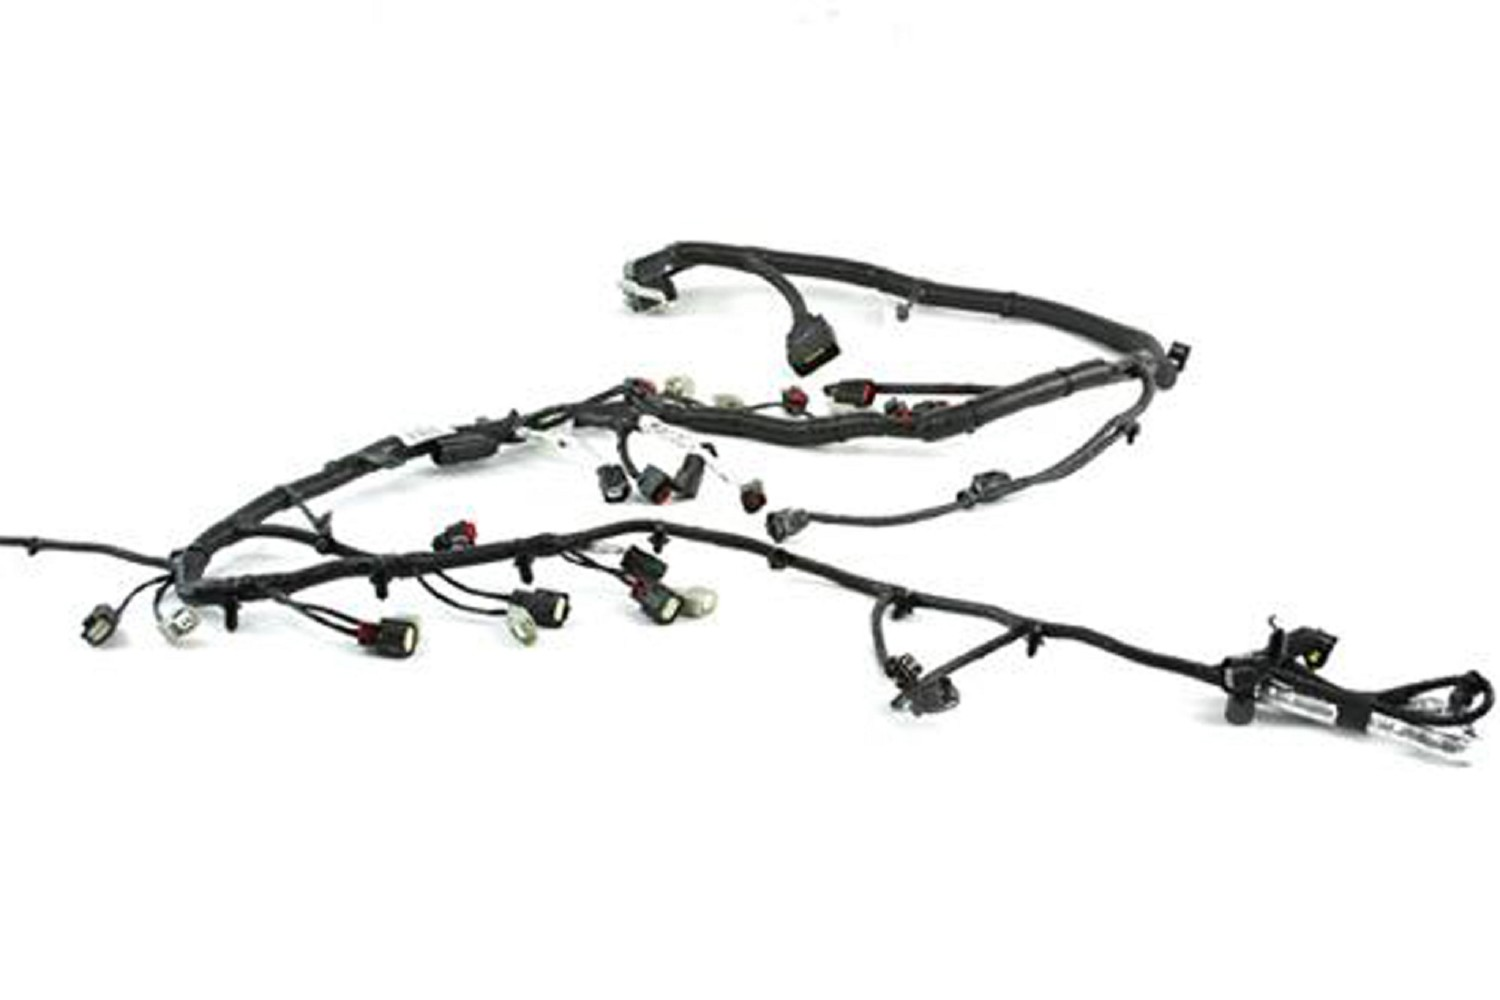 Ford Performance Mustang 5.0L TIVCT Coyote Engine Harness (11-14 GT)